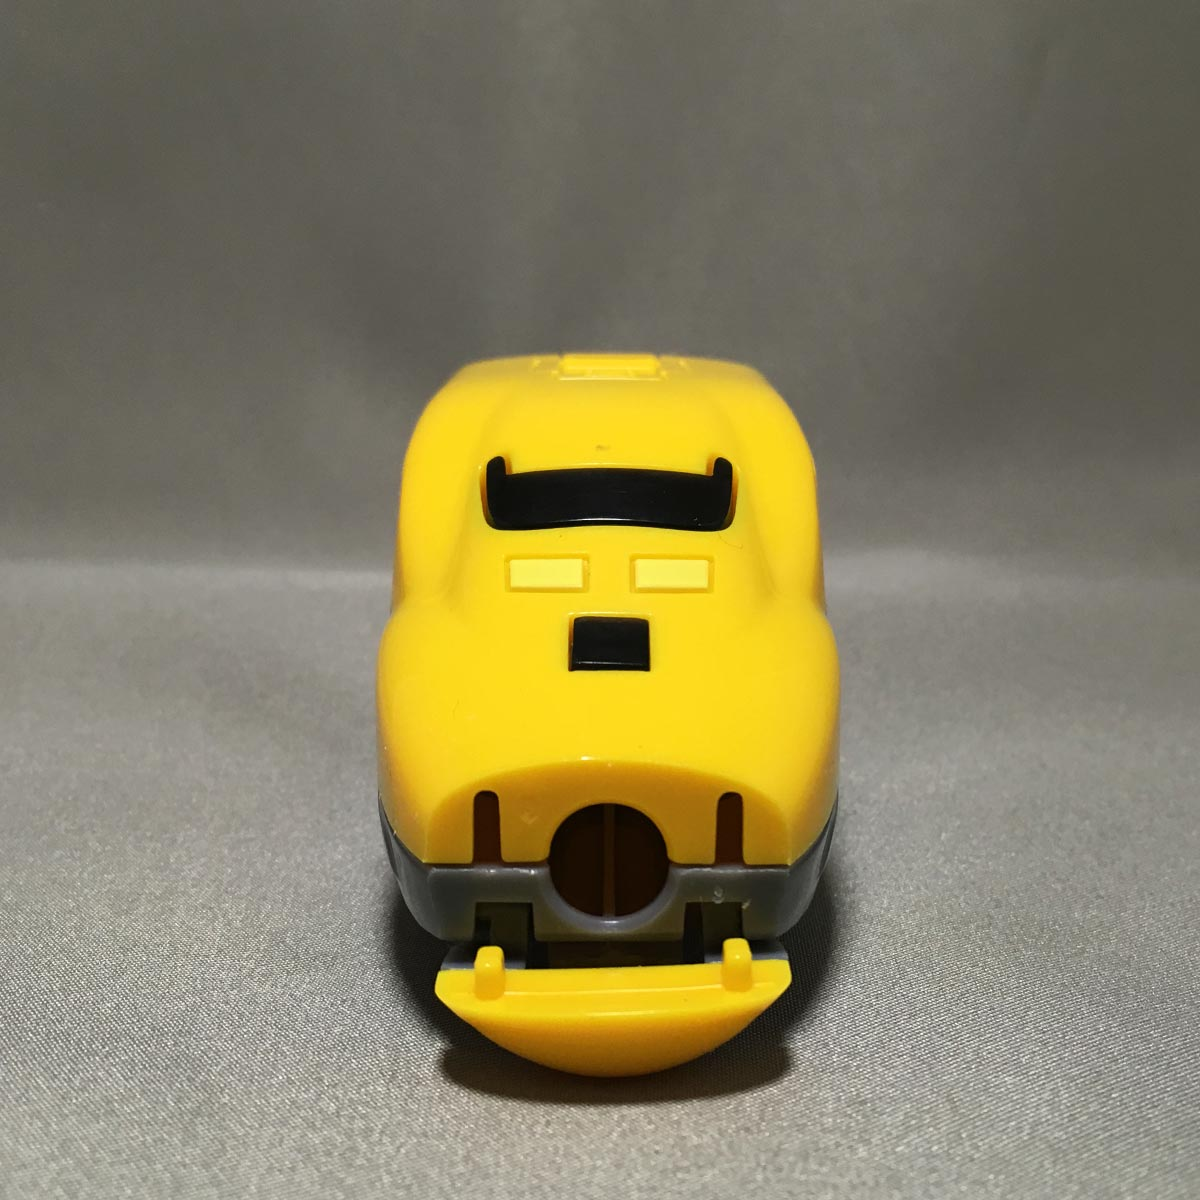 Doctor Yellow Pencil Sharpener - front view opened